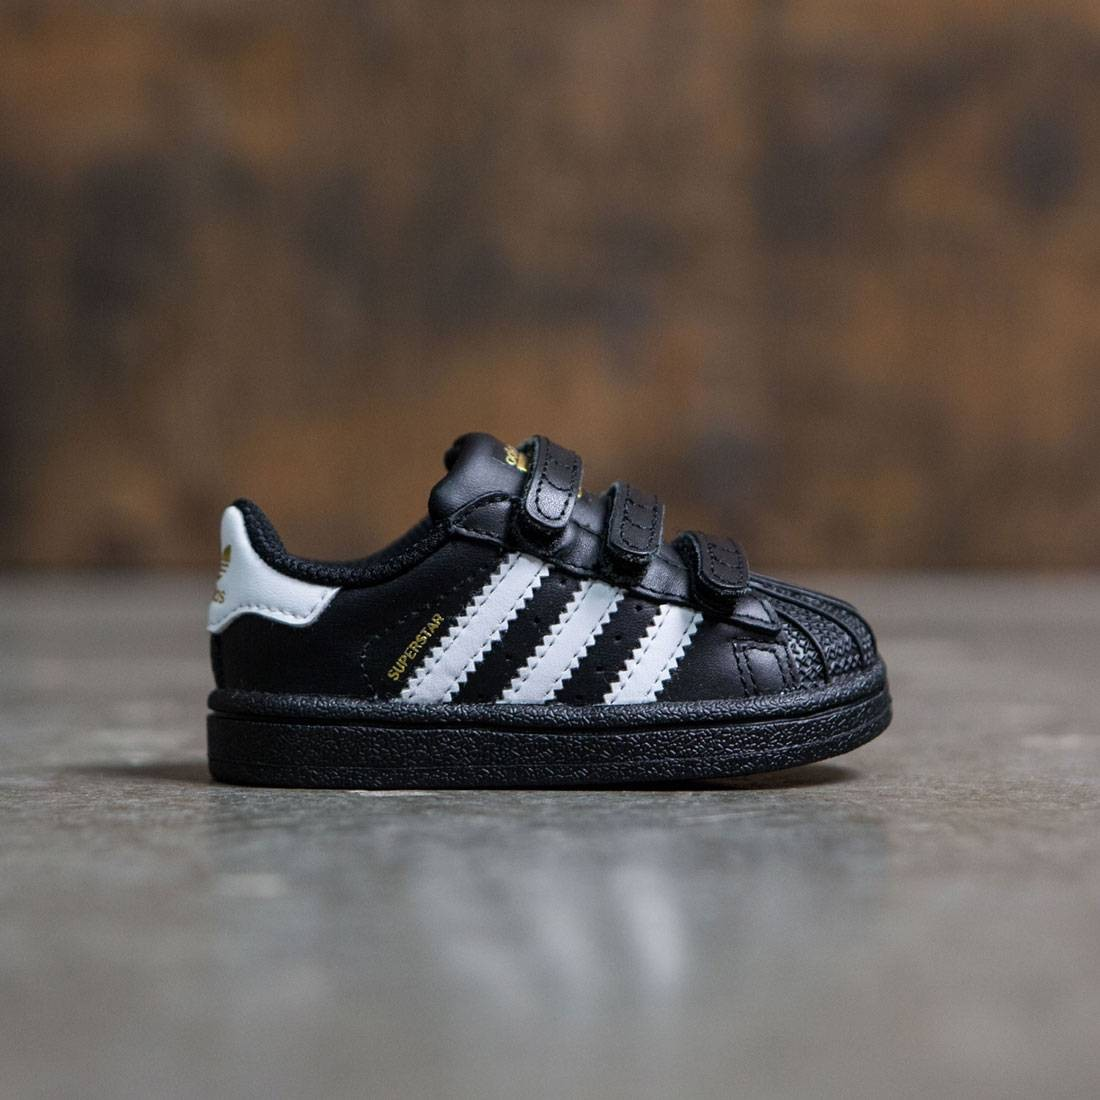 adidas for Toddlers: